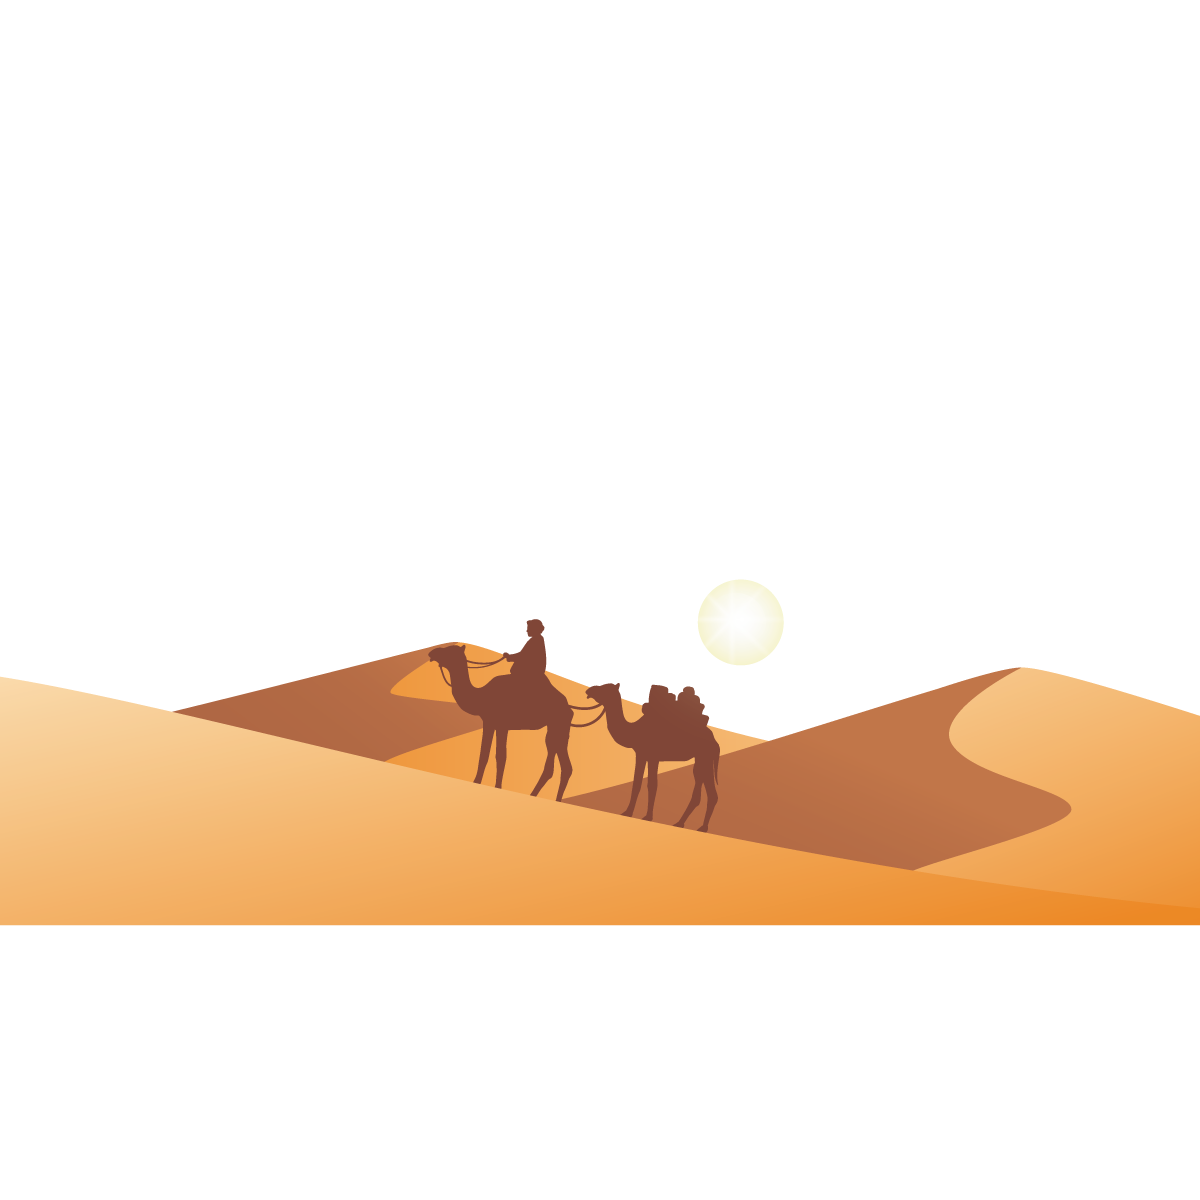 Desert cartoon png. Sand vector safaris transprent